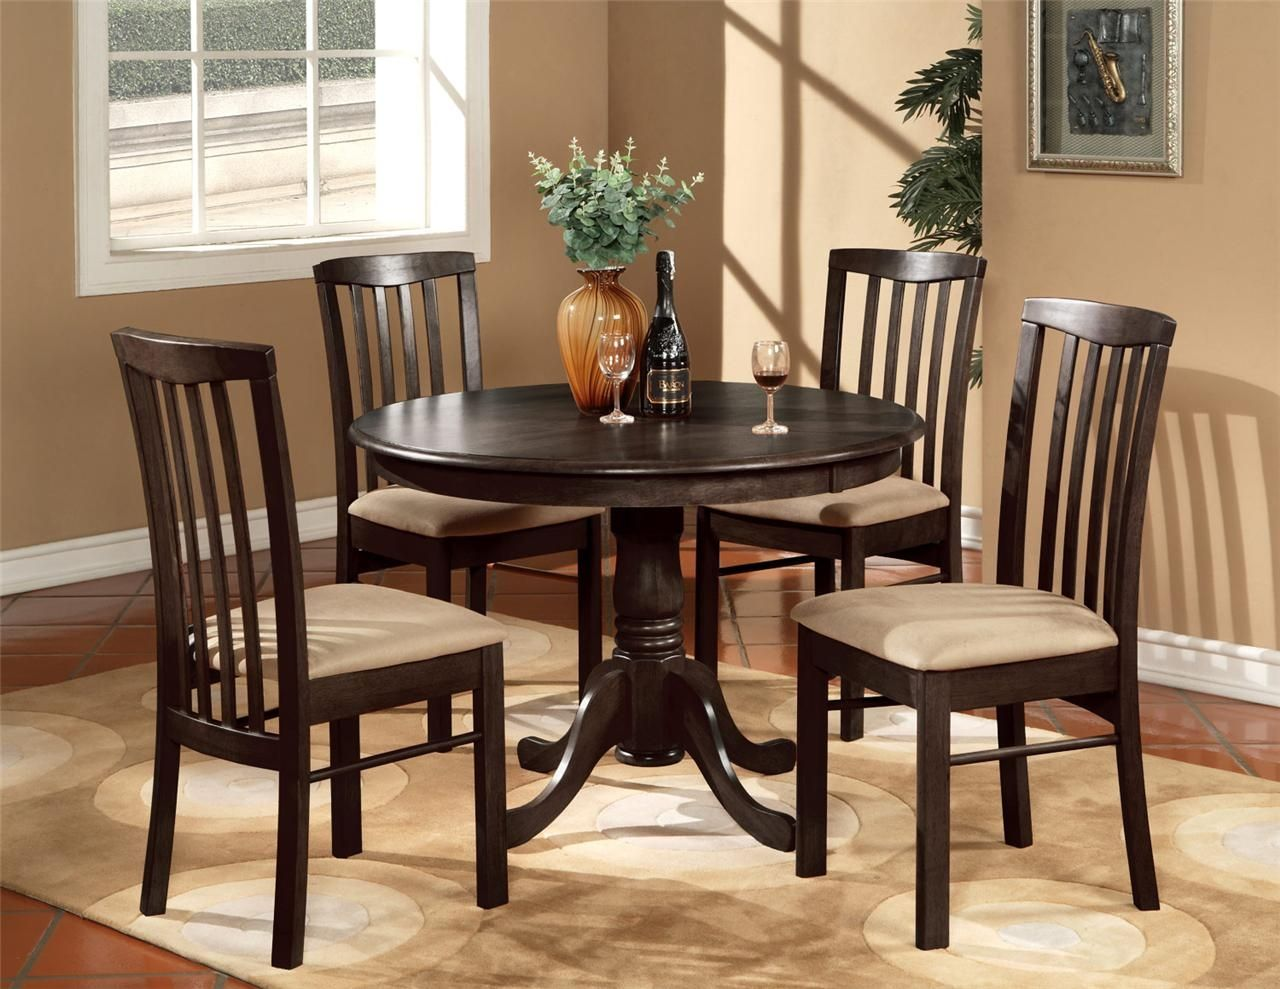 Small Round Kitchen Table With 4 Chairs